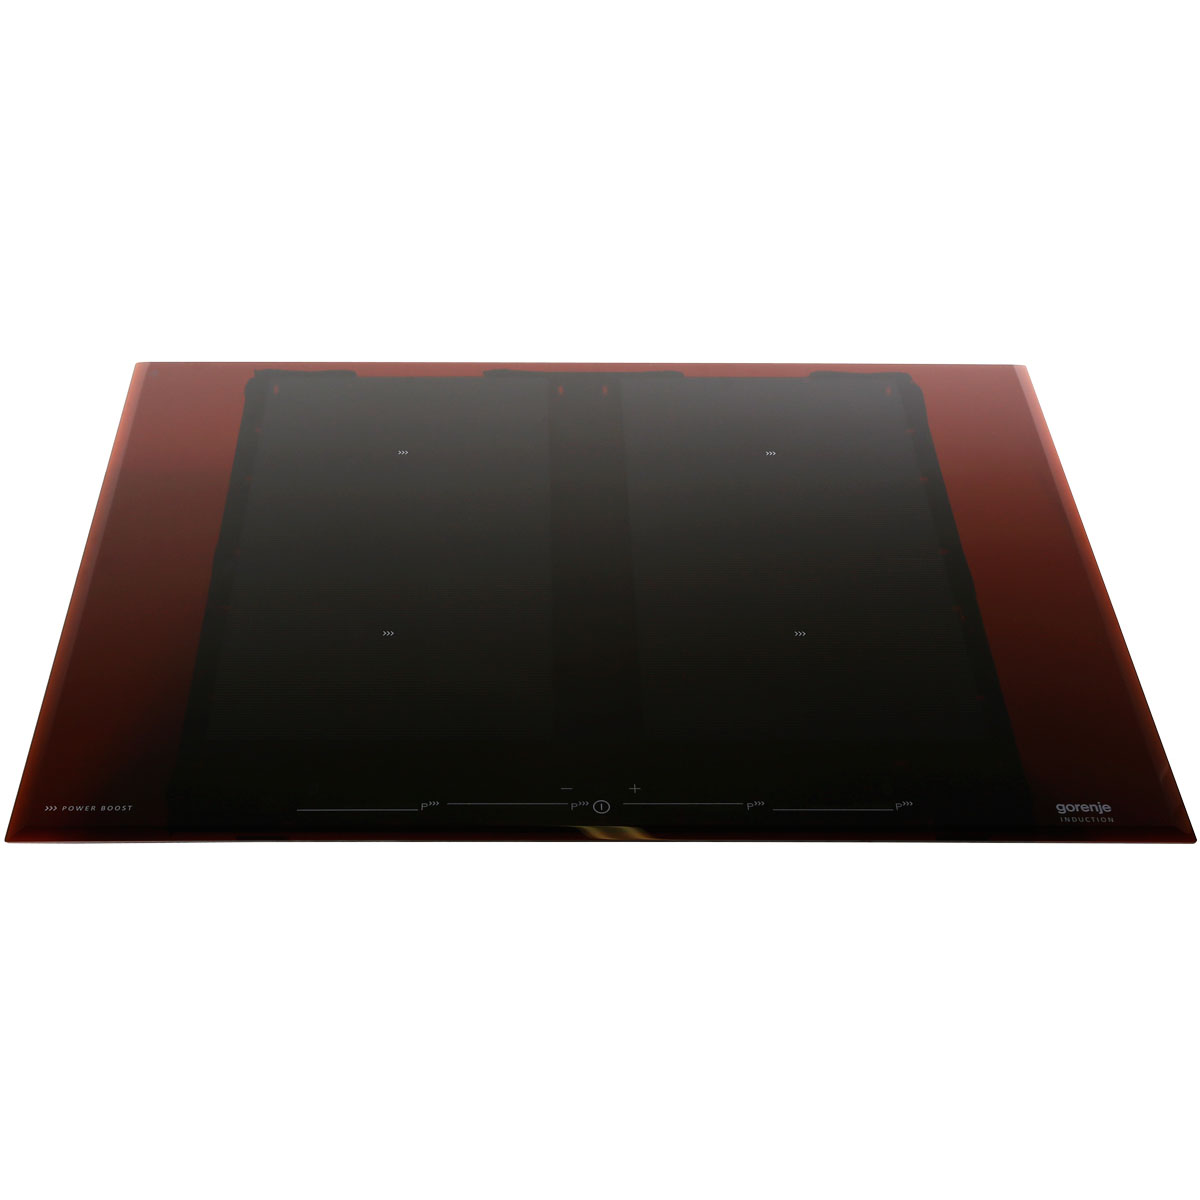 Gorenje IS777USC 75cm Induction Cooktop 33026